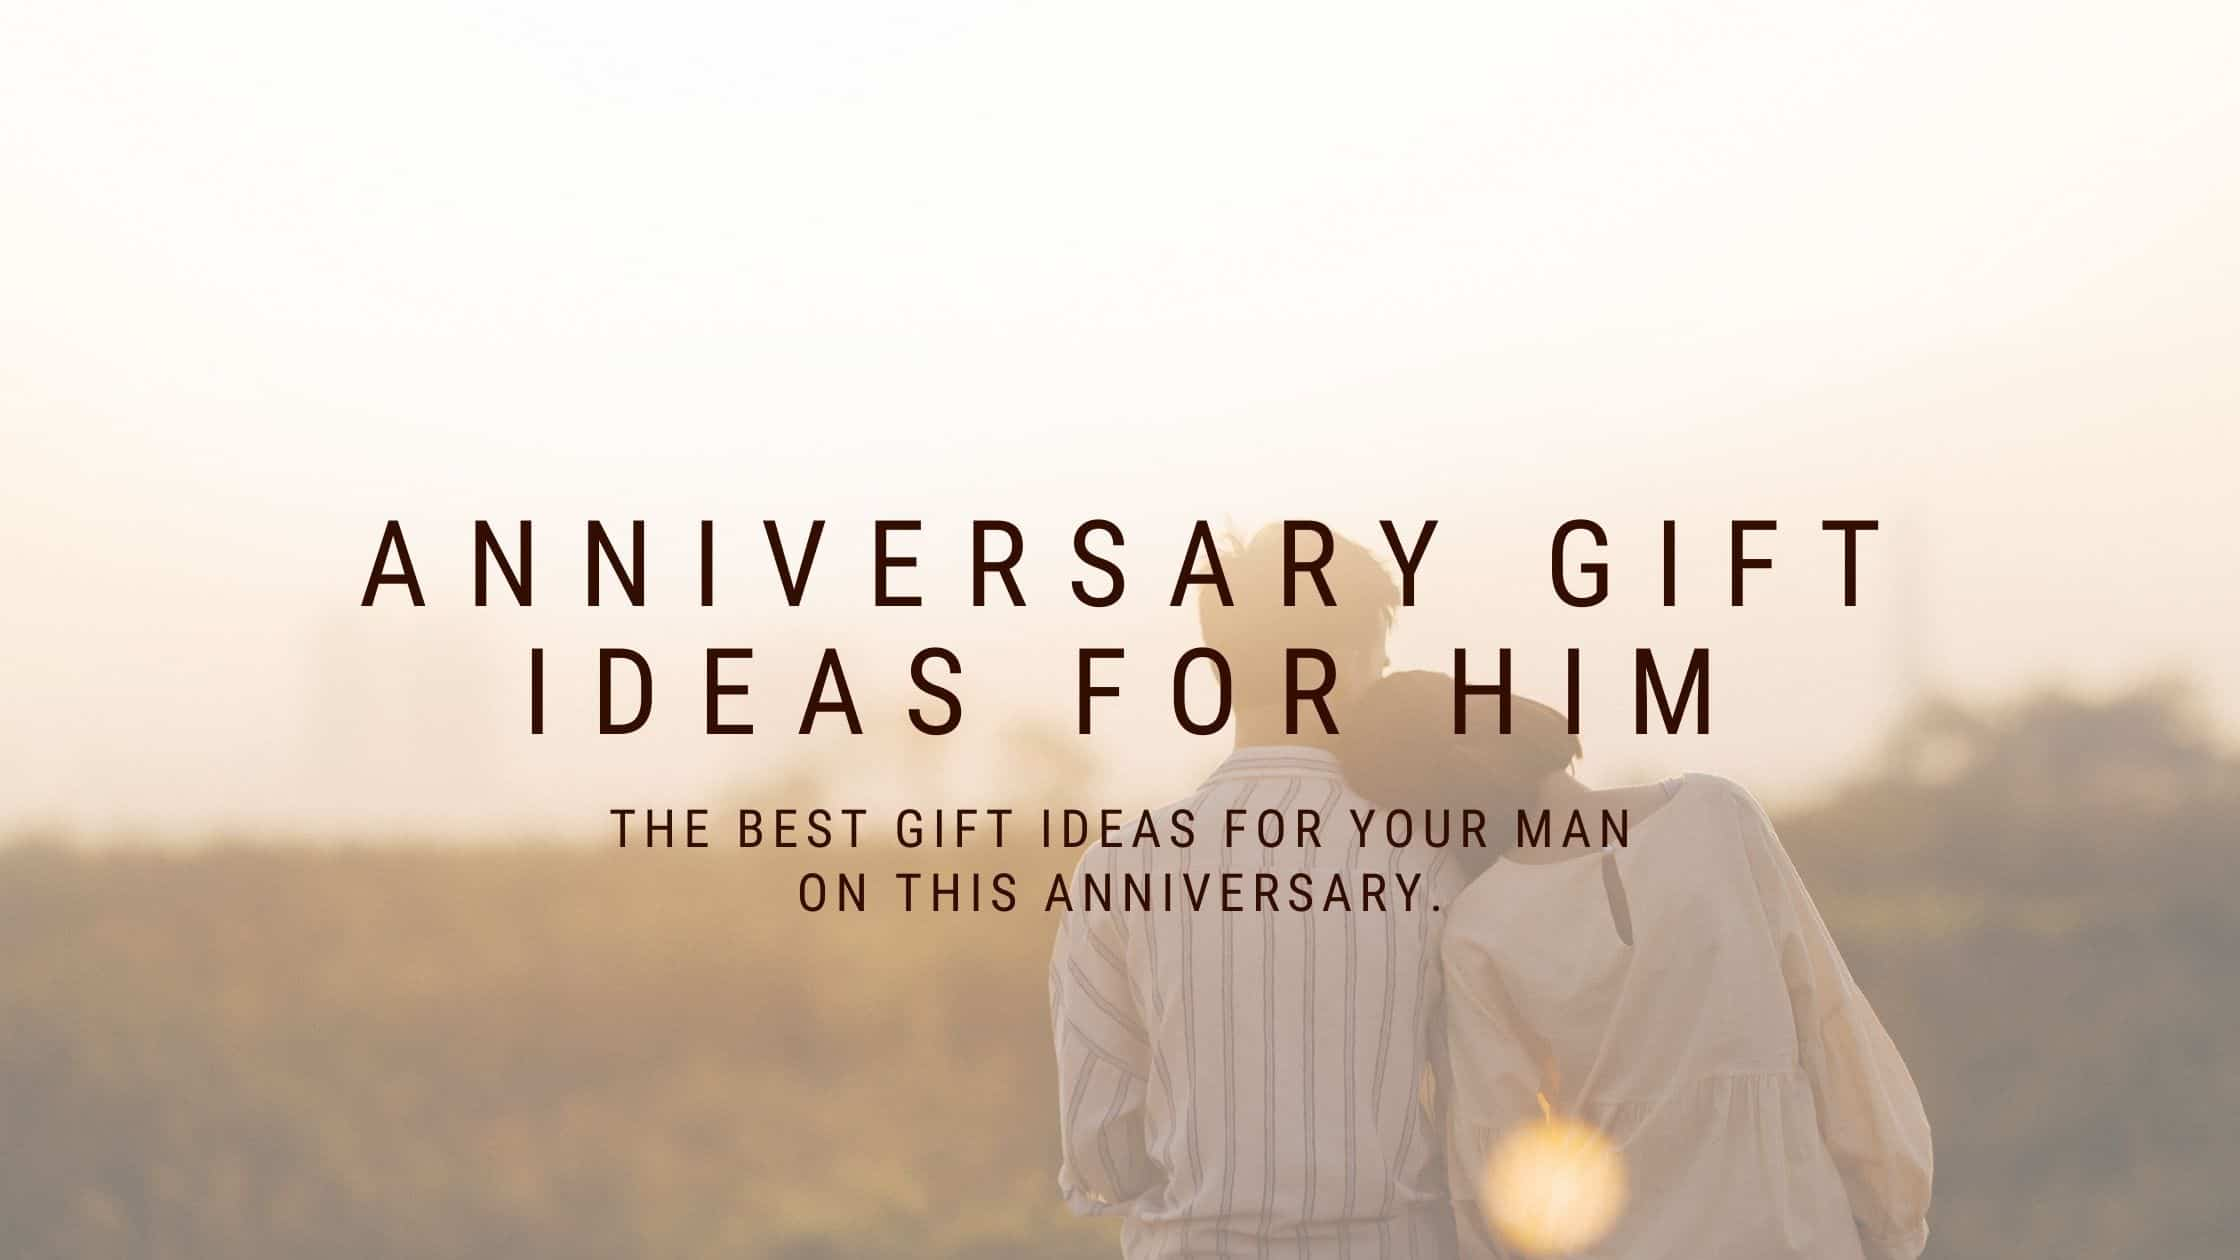 45+ Anniversary Gift Ideas for Him to Express Your Love (2021)